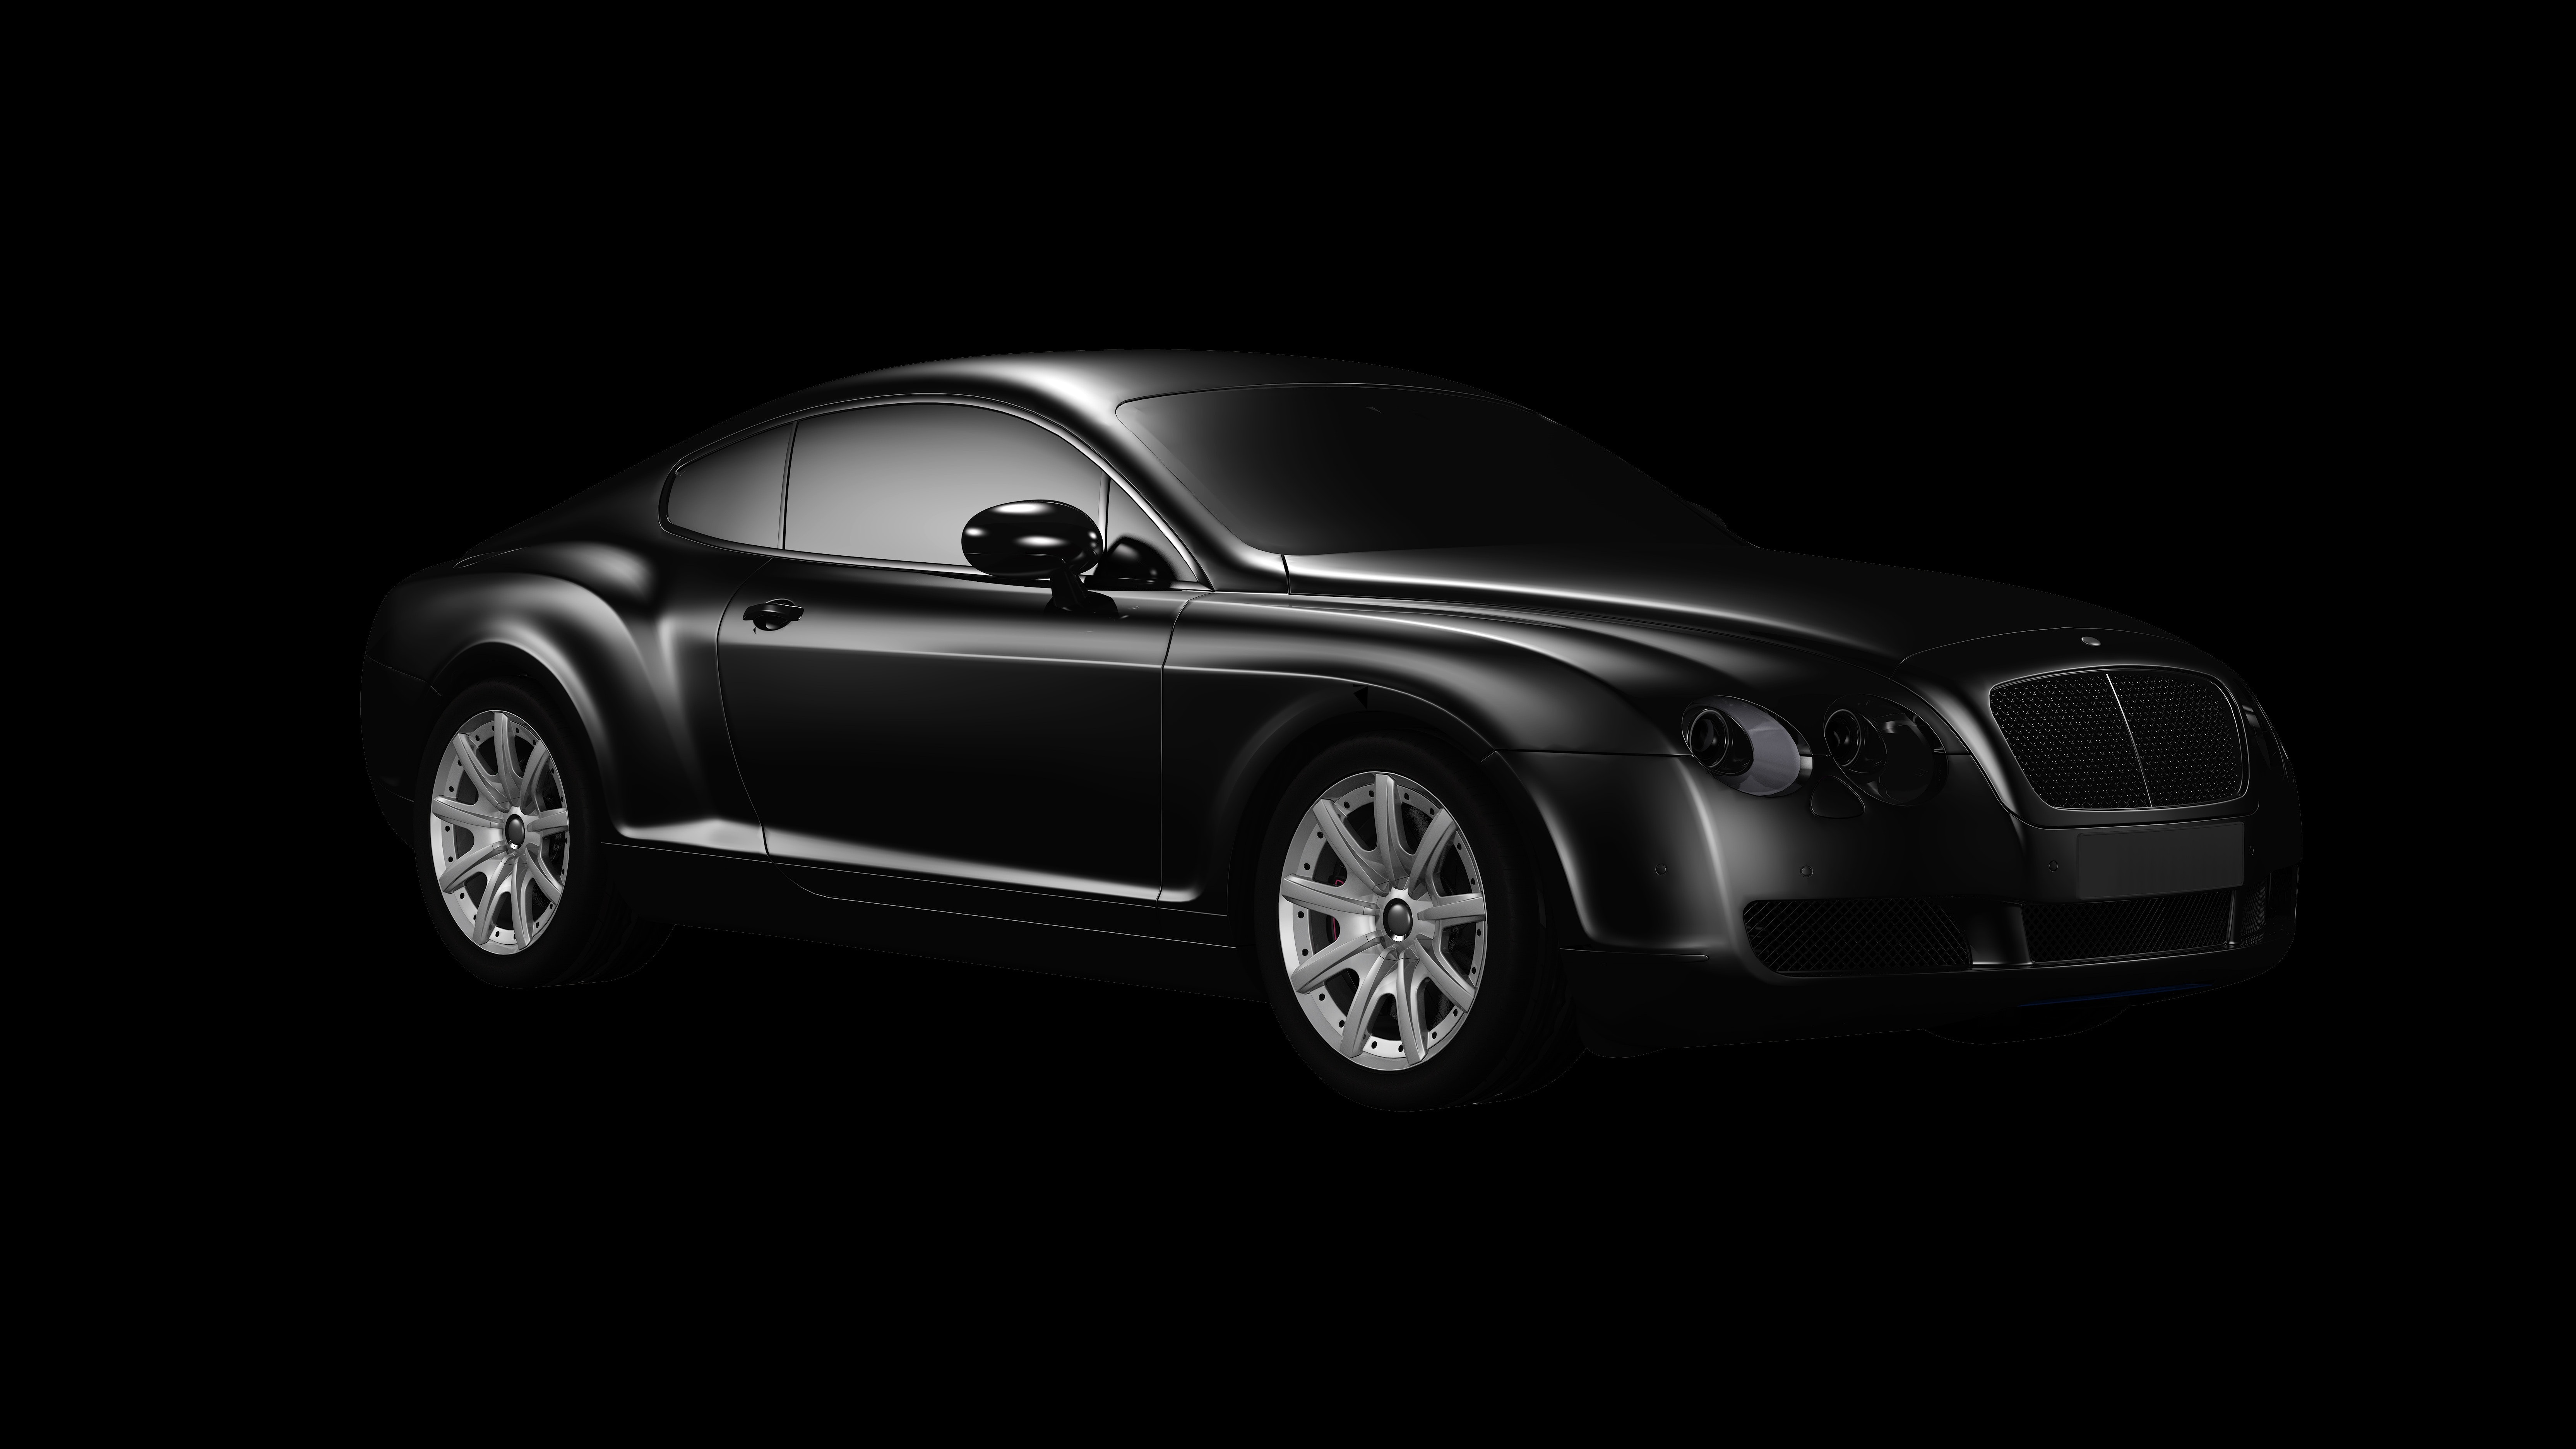 logos have cost we cropped motor with and bentley do luxury cars al houston low car rental